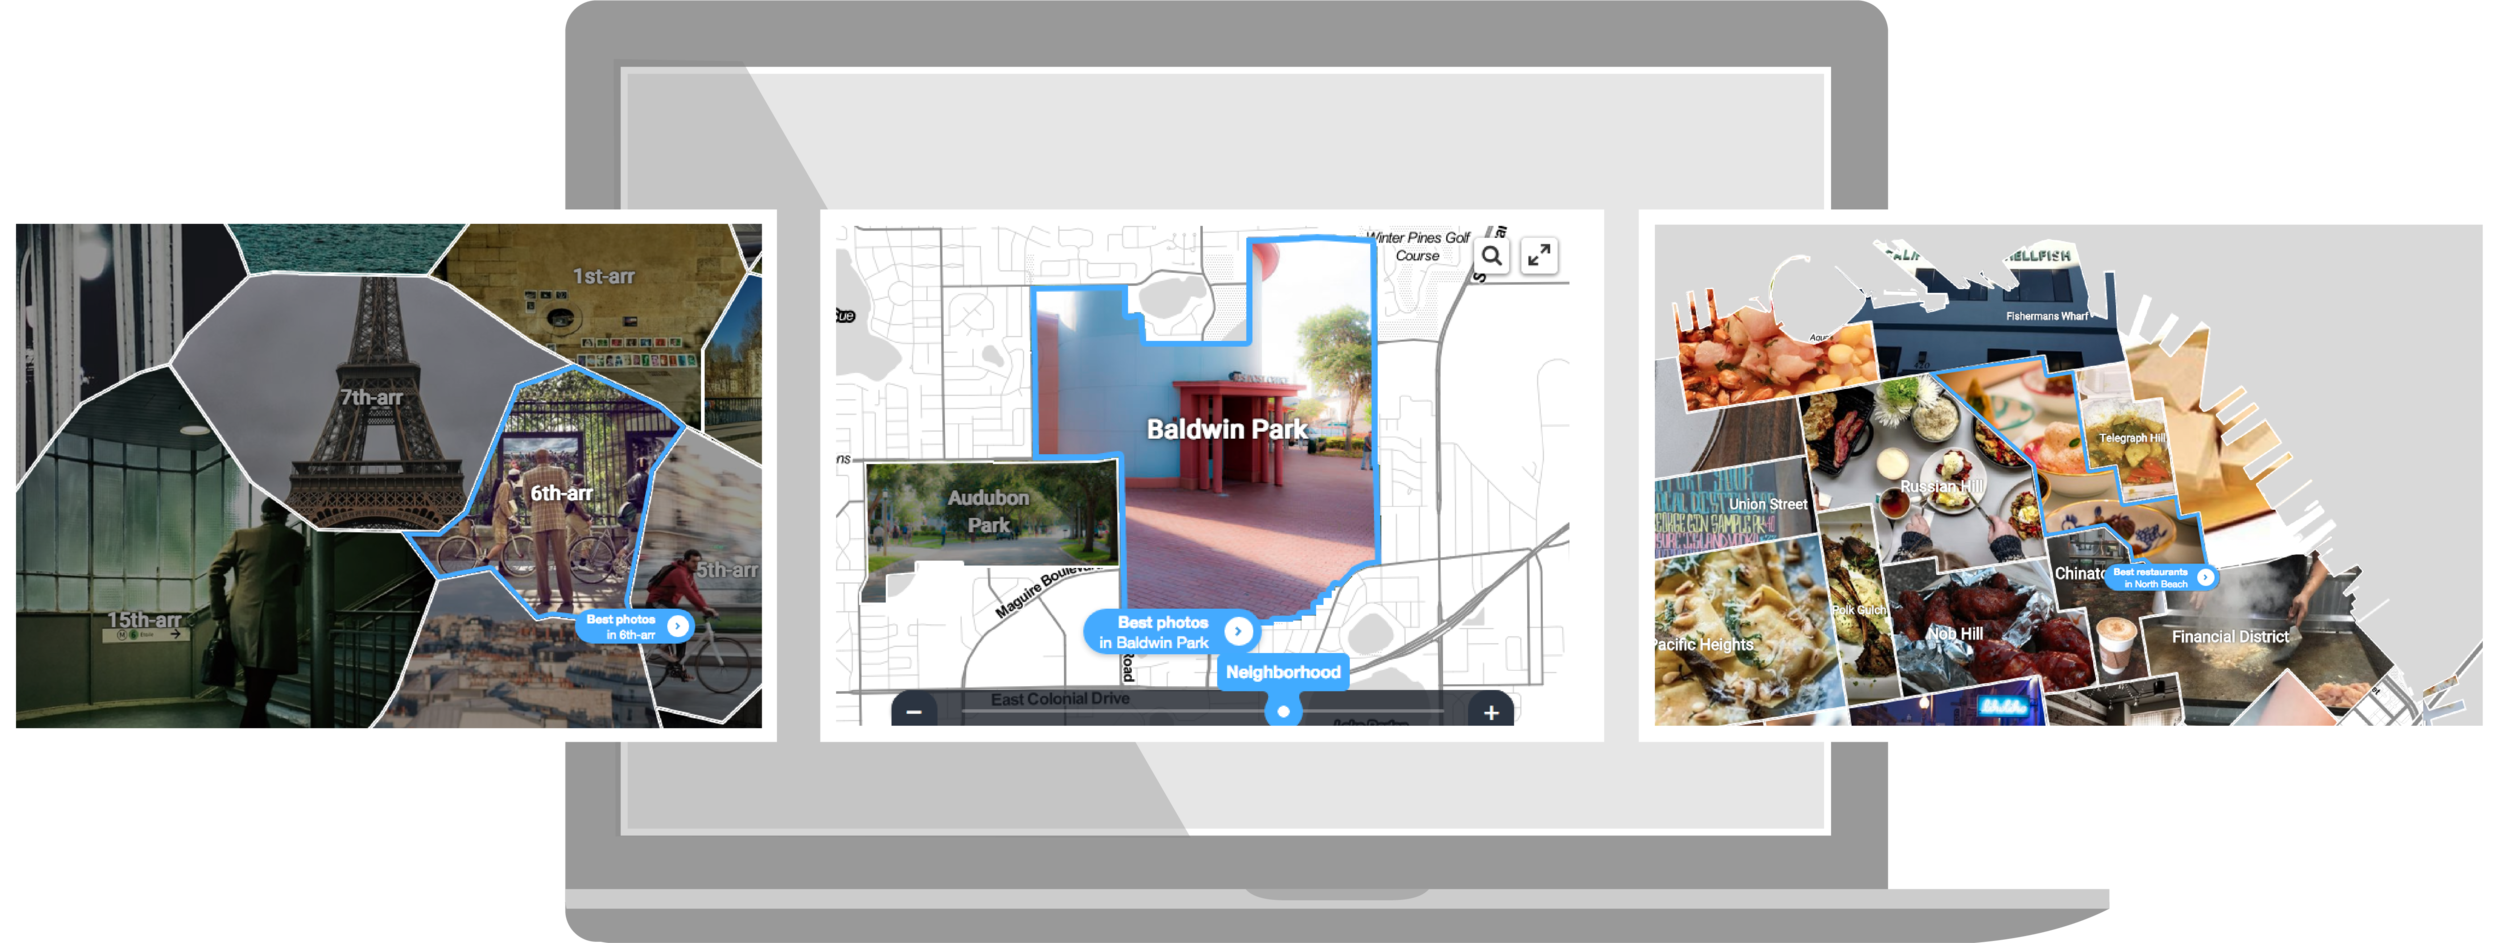 - Need a map of restaurants and attractions in your town? Make it in seconds, grab the snippet of code and embed on your own site - for free! We're so confident you'll love it that the first month of your photo map is on us.